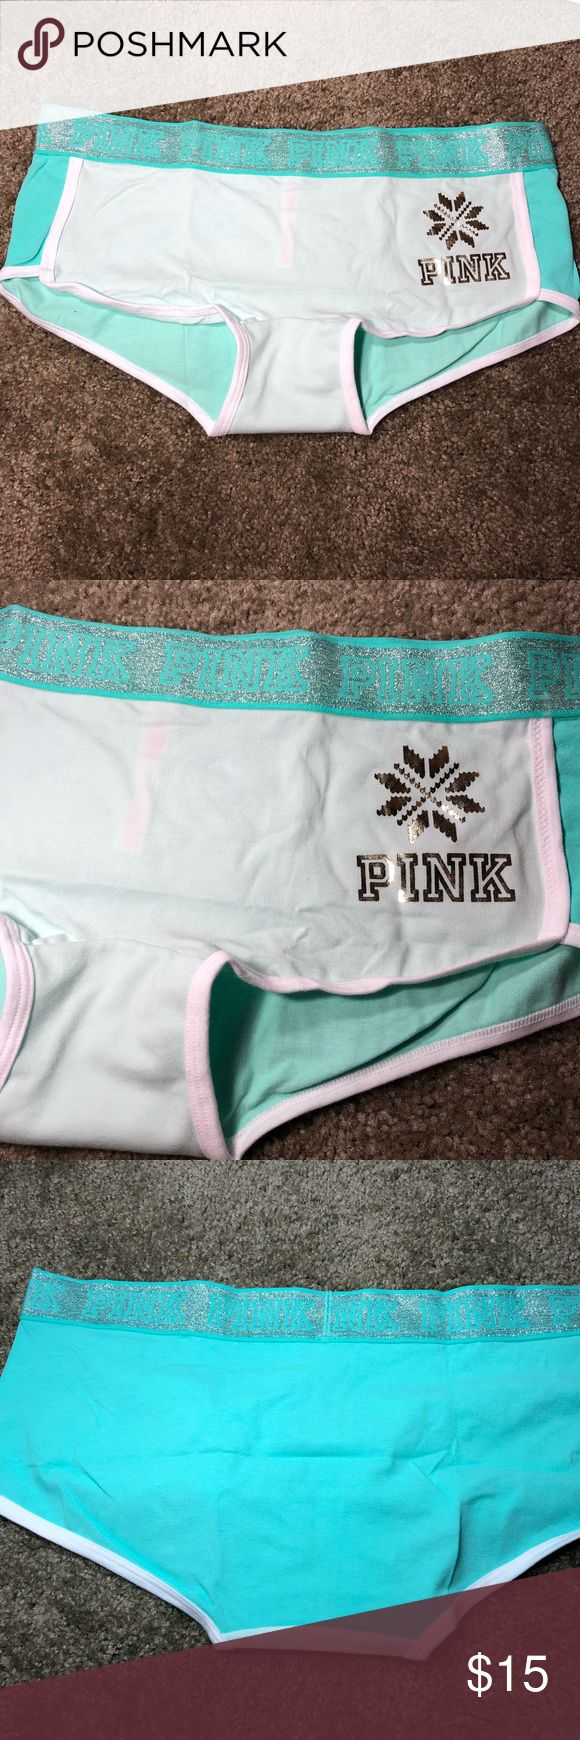 ❄️VS PINK WINTER HOLIDAY BOYSHORTS❄️ Super cute teal boyshort Panties from  Victoria's Secret Pink Size Large Glittery and great for winter time :) New in packaging, just taken out for photos PINK Victoria's Secret Intimates & Sleepwear Panties